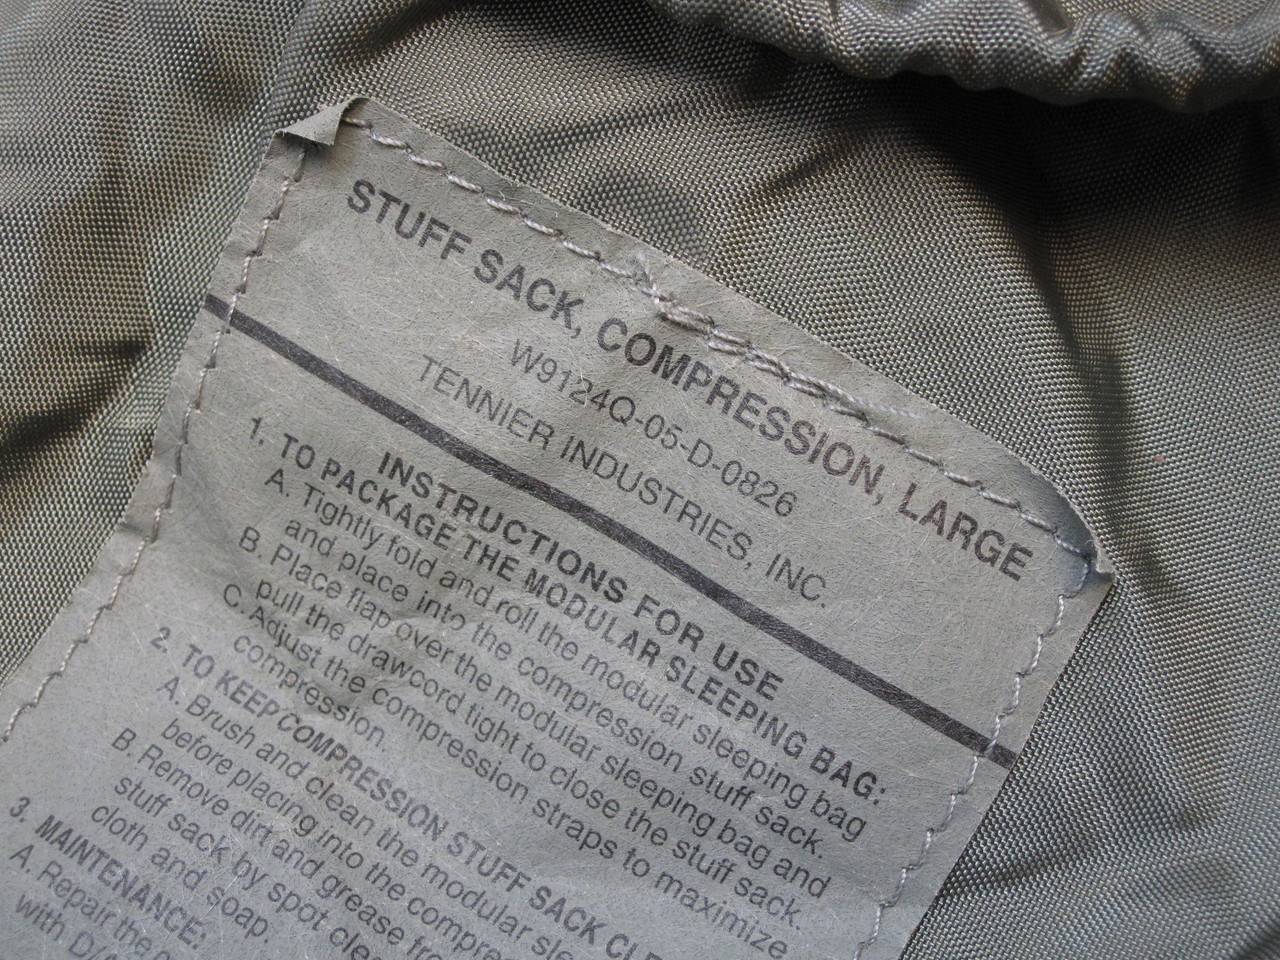 ARMY FOLIAGE GREY SLEEPING BAG LARGE COMPRESSION SACK MILITARY SLEEP SYSTEM b4